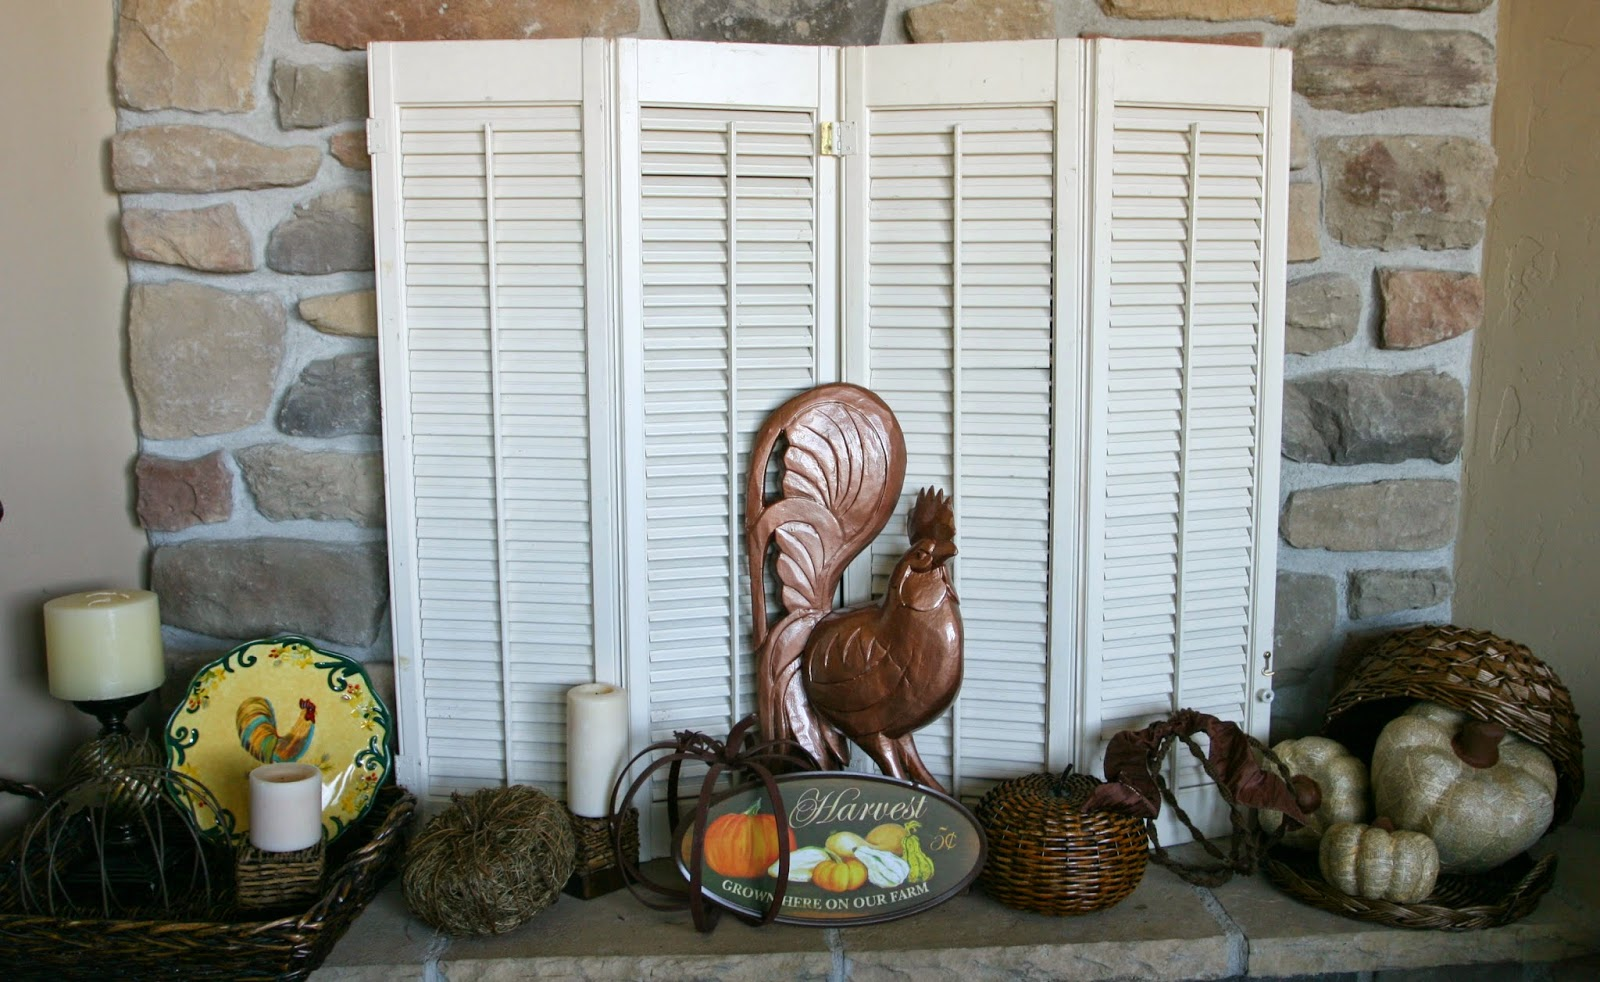 Adventures of a BusyBee: Fall Mantle with Sunflowers and Roosters